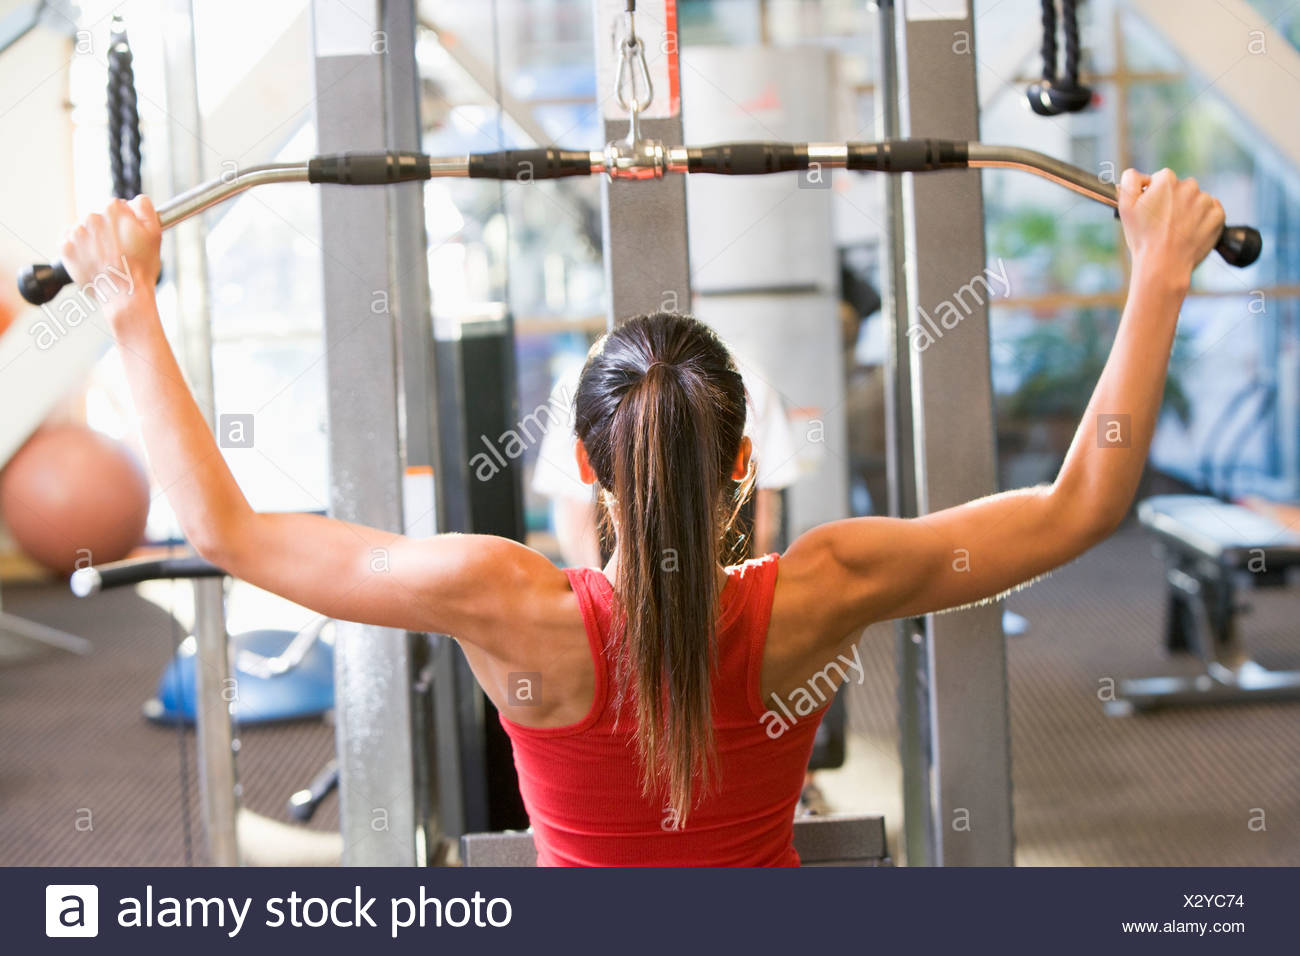 Woman Weight Training At Gym - Stock Image